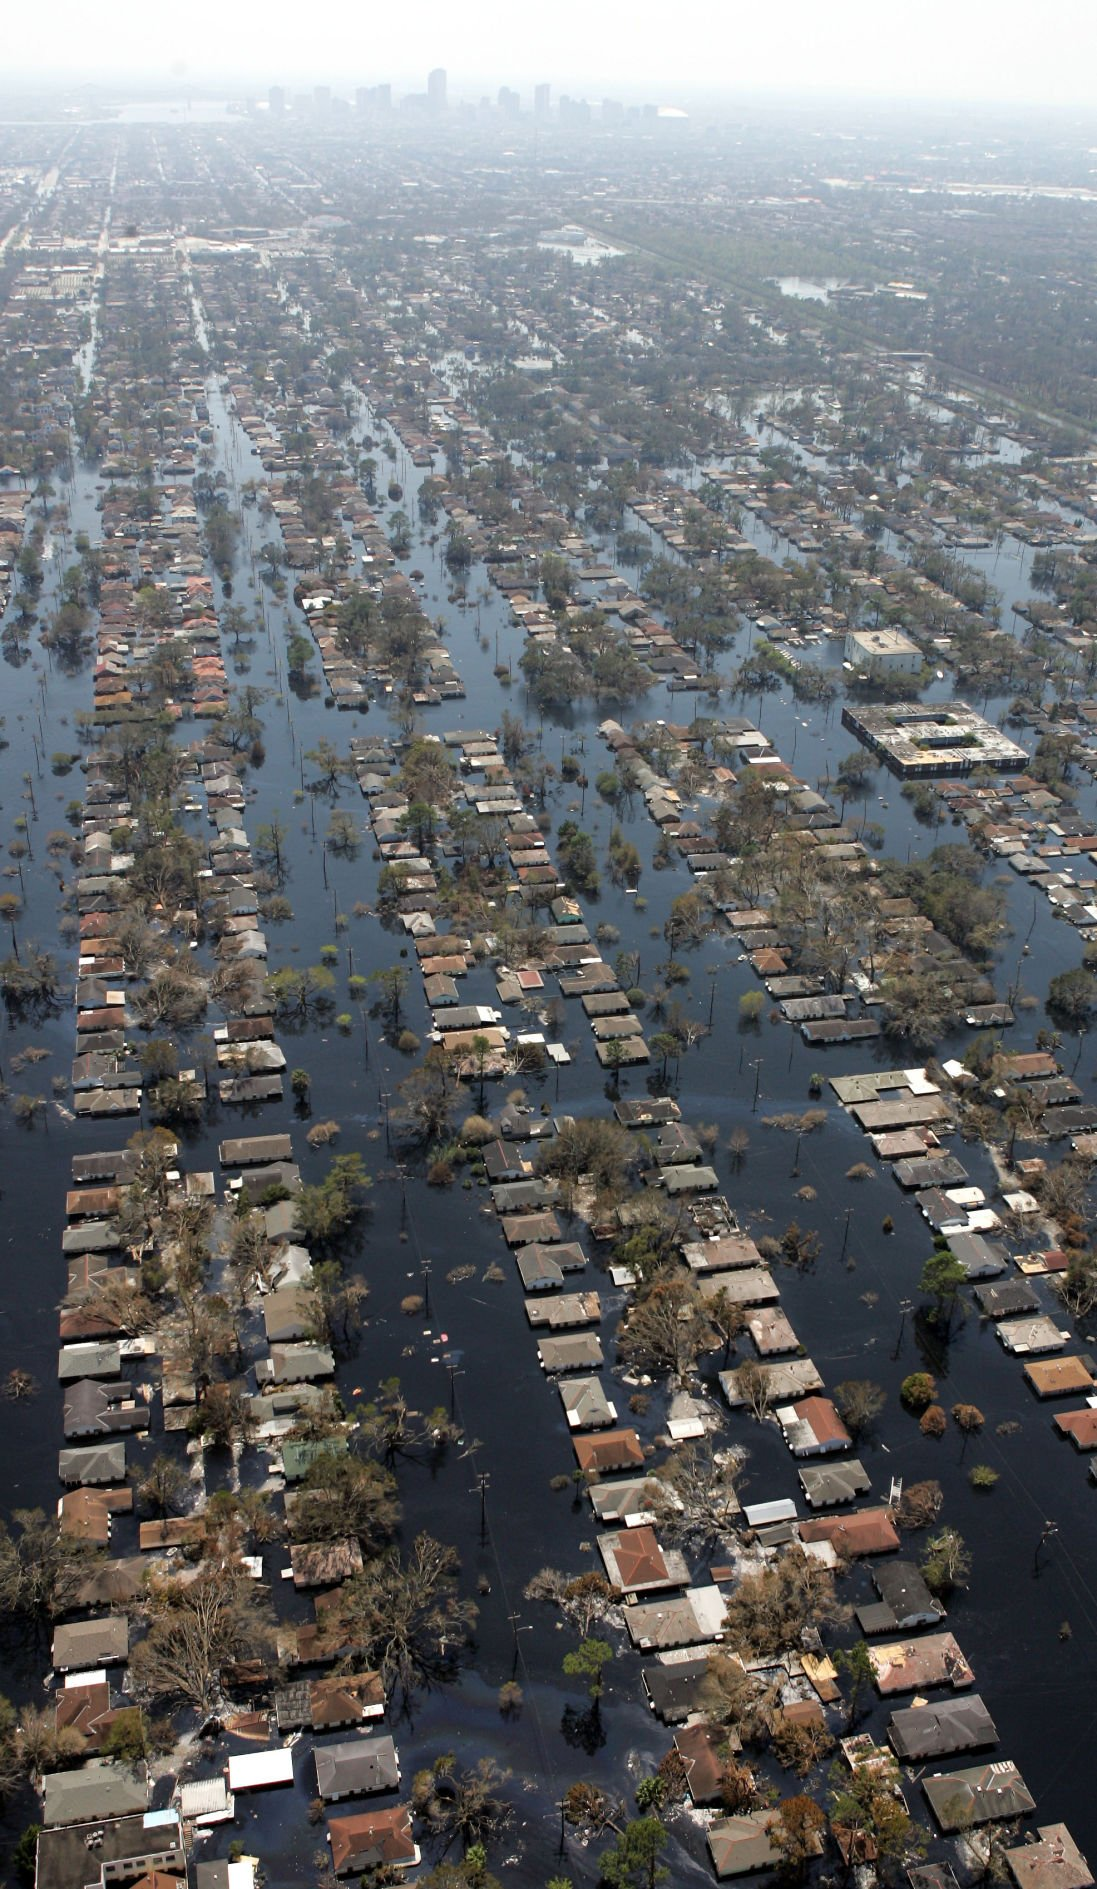 Hurricane katrina bodies photos Race An Issue In Katrina Response - CBS News